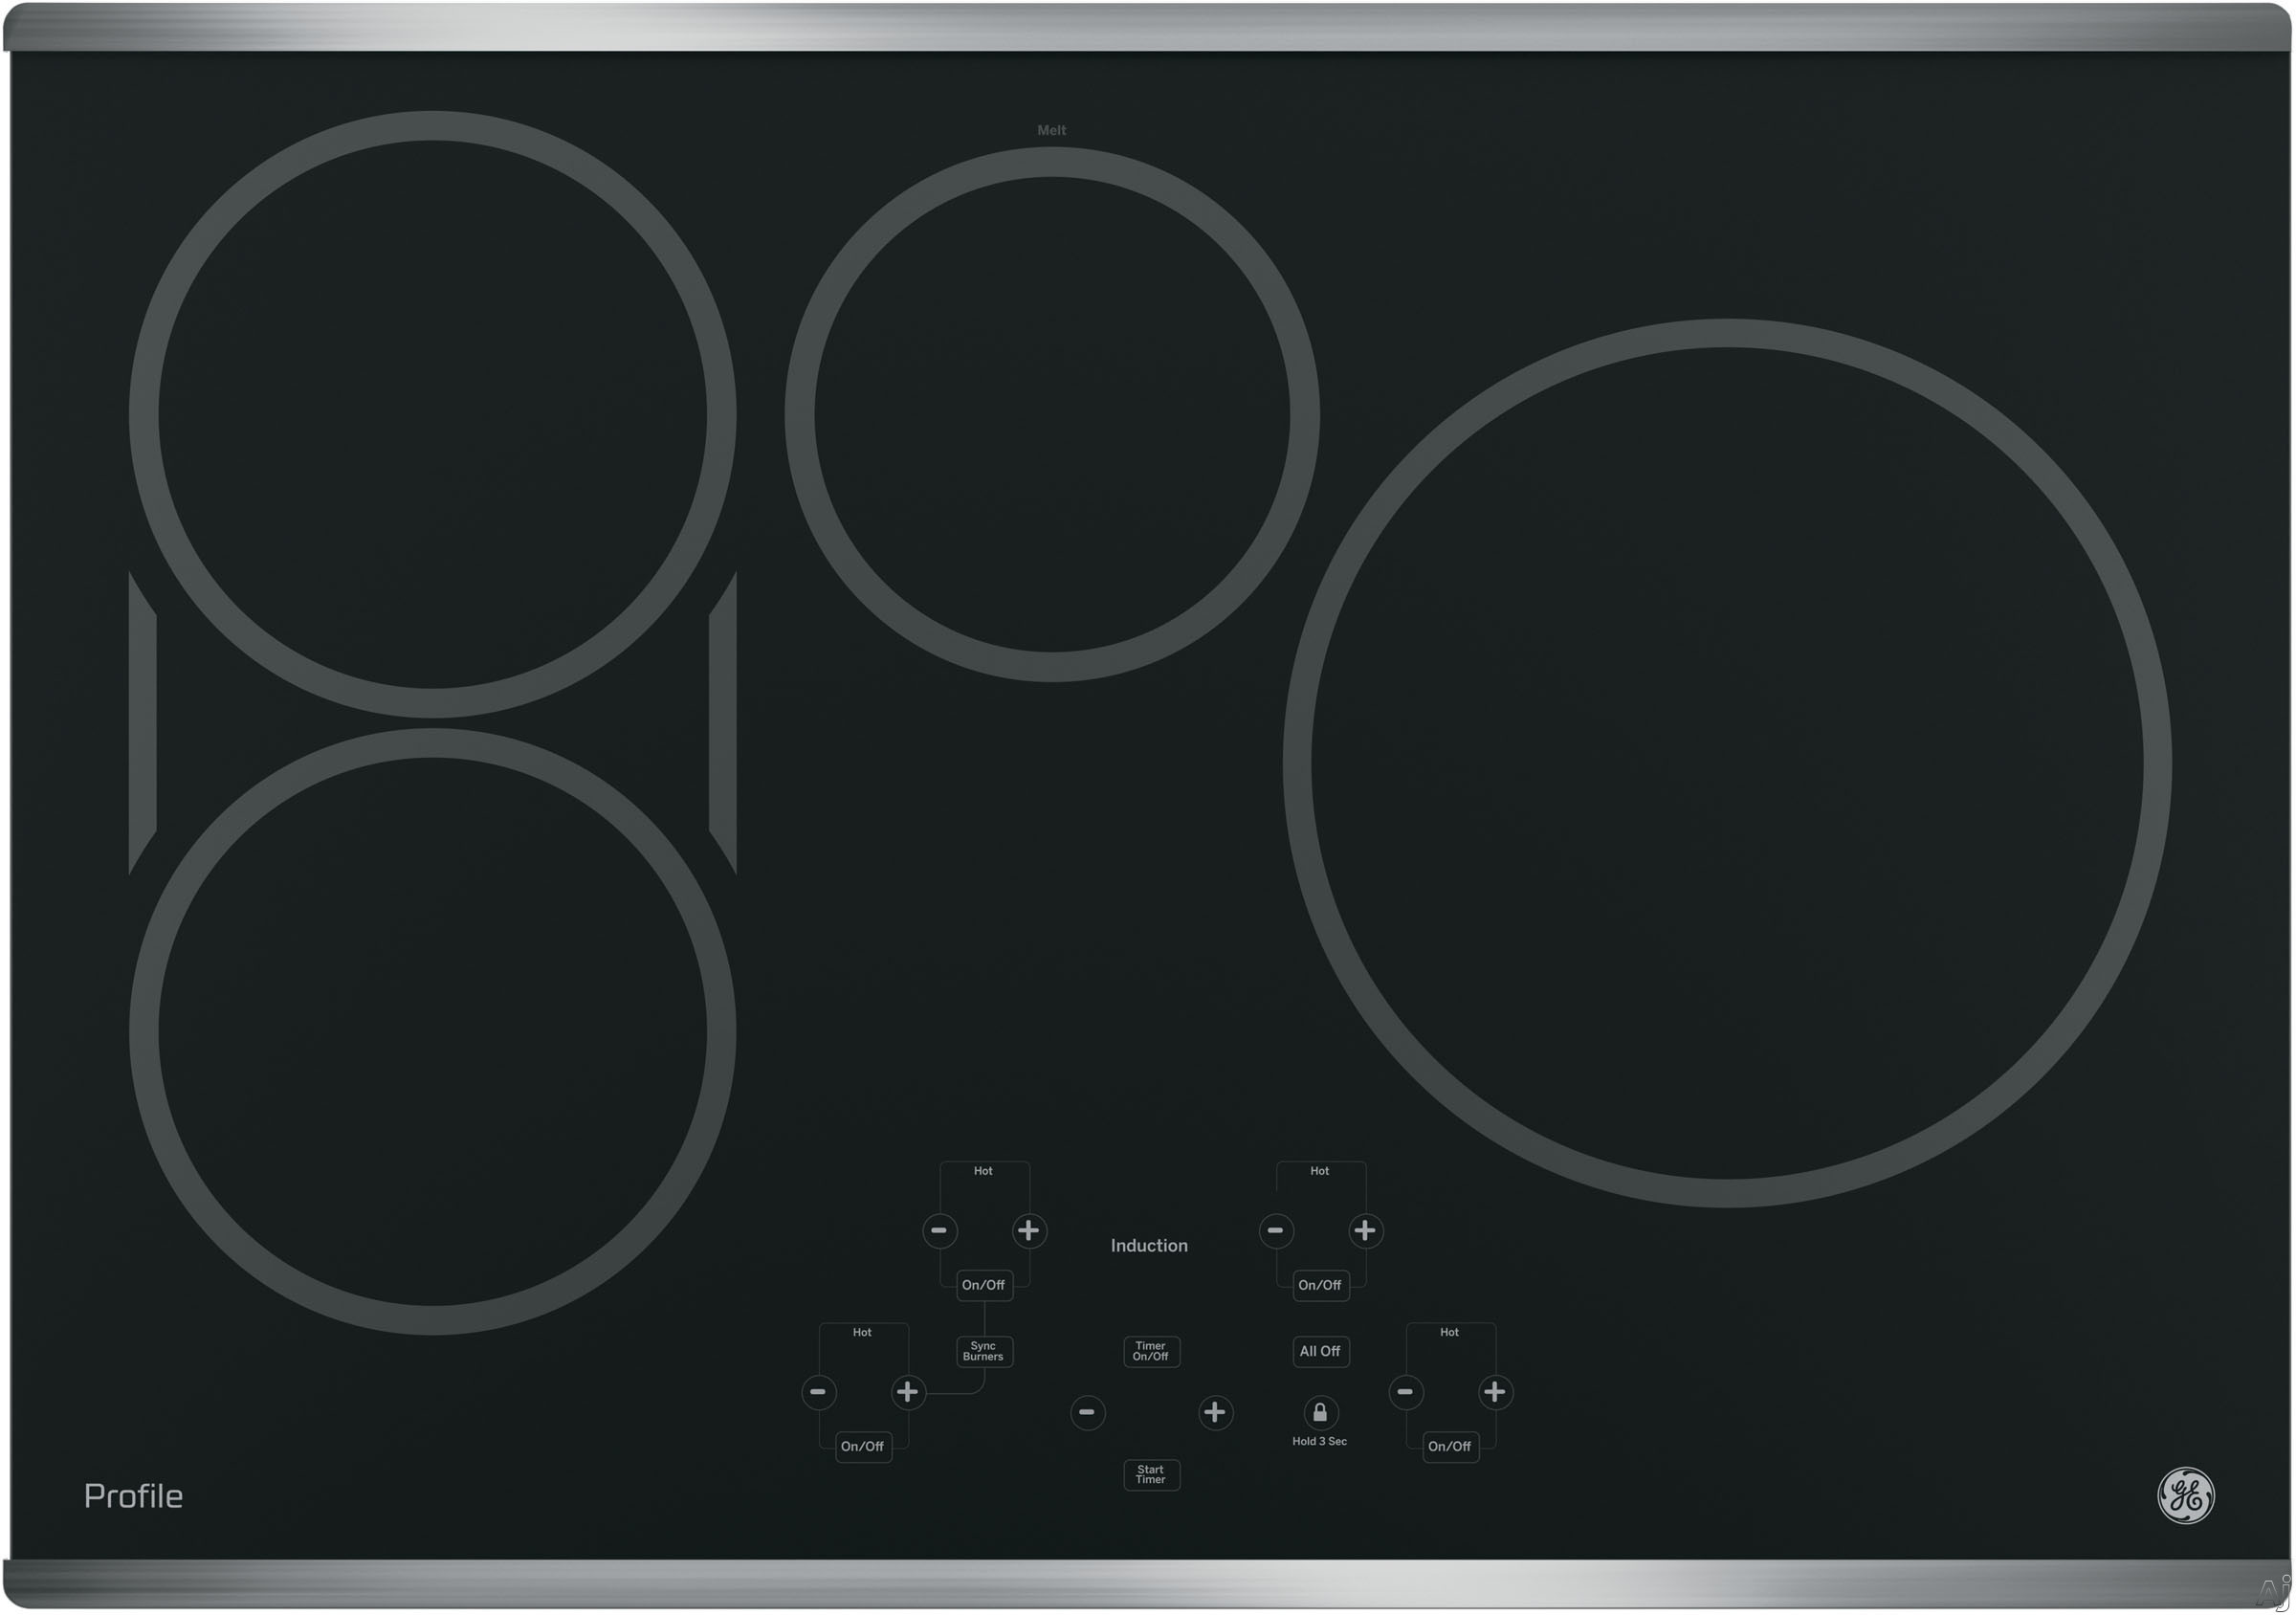 GE Profile PHP9030SJSS 30 Inch Induction Cooktop with 4 Cooking Zones, SyncBurners, Digital Red LED Touch Controls, Kitchen Timer, Control Lock, All-Off Feature, Hot Surface Indicator Light, ADA Compliant and GE Fits! Guarantee: Stainless Steel